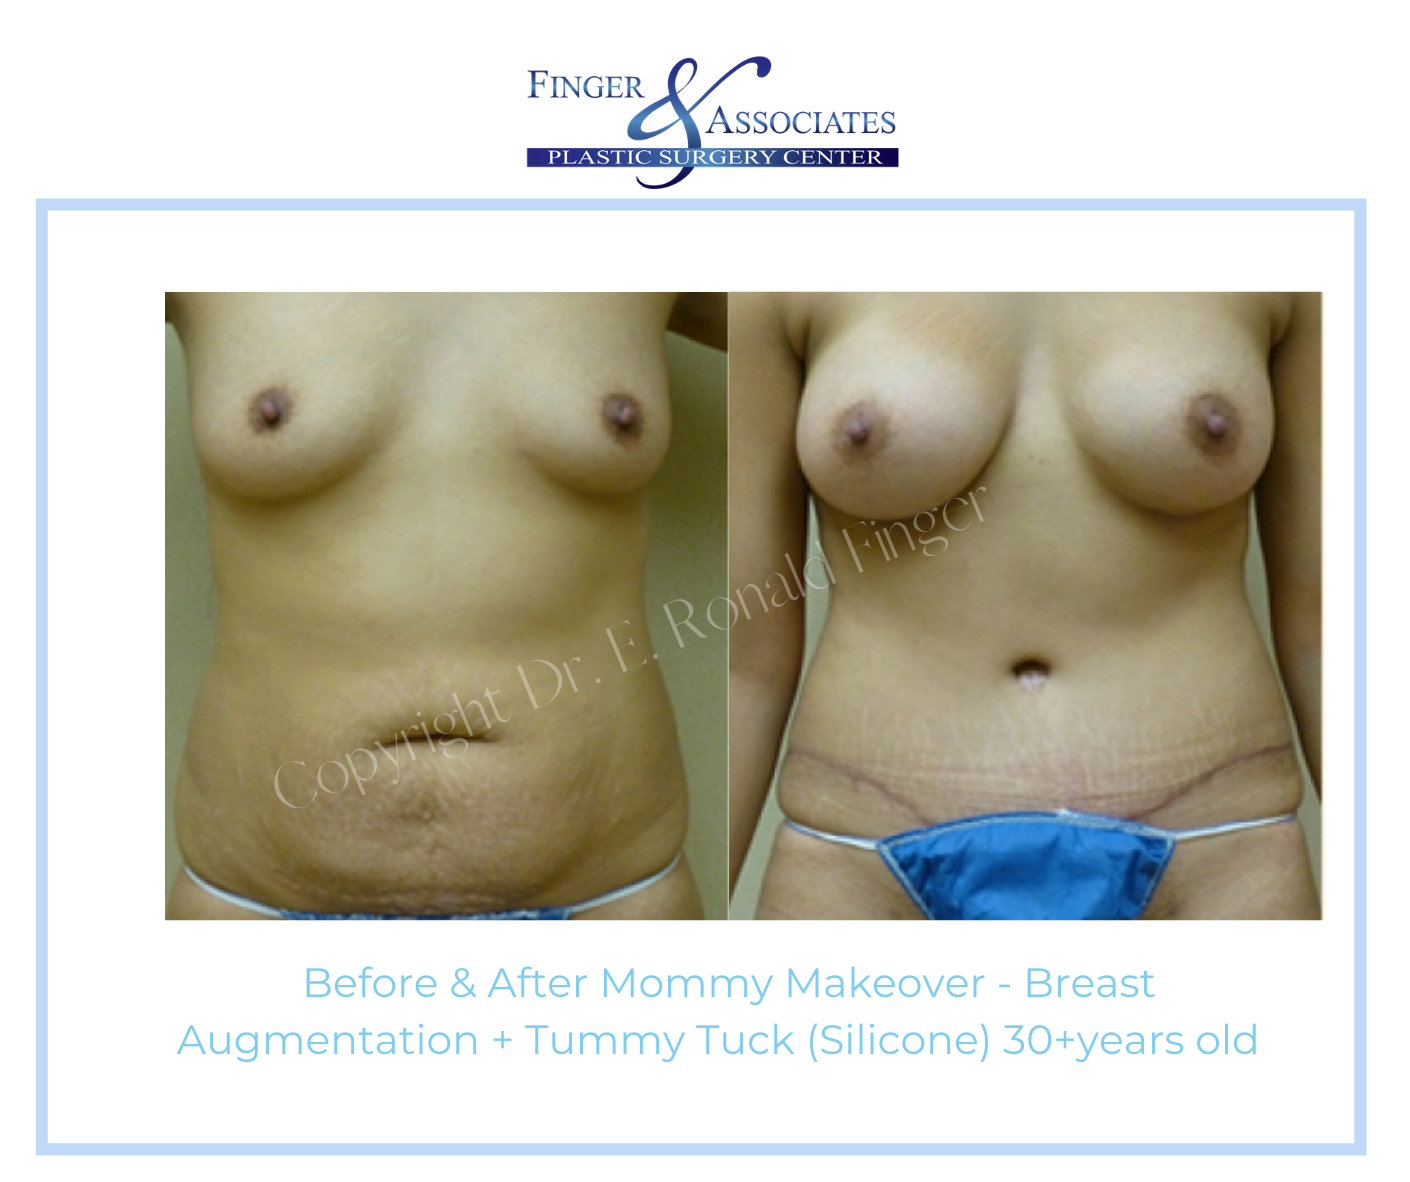 Before and After Mommy Makeover - Breast Augmentation + Tummy Tuck (Silicone) 30+ years old